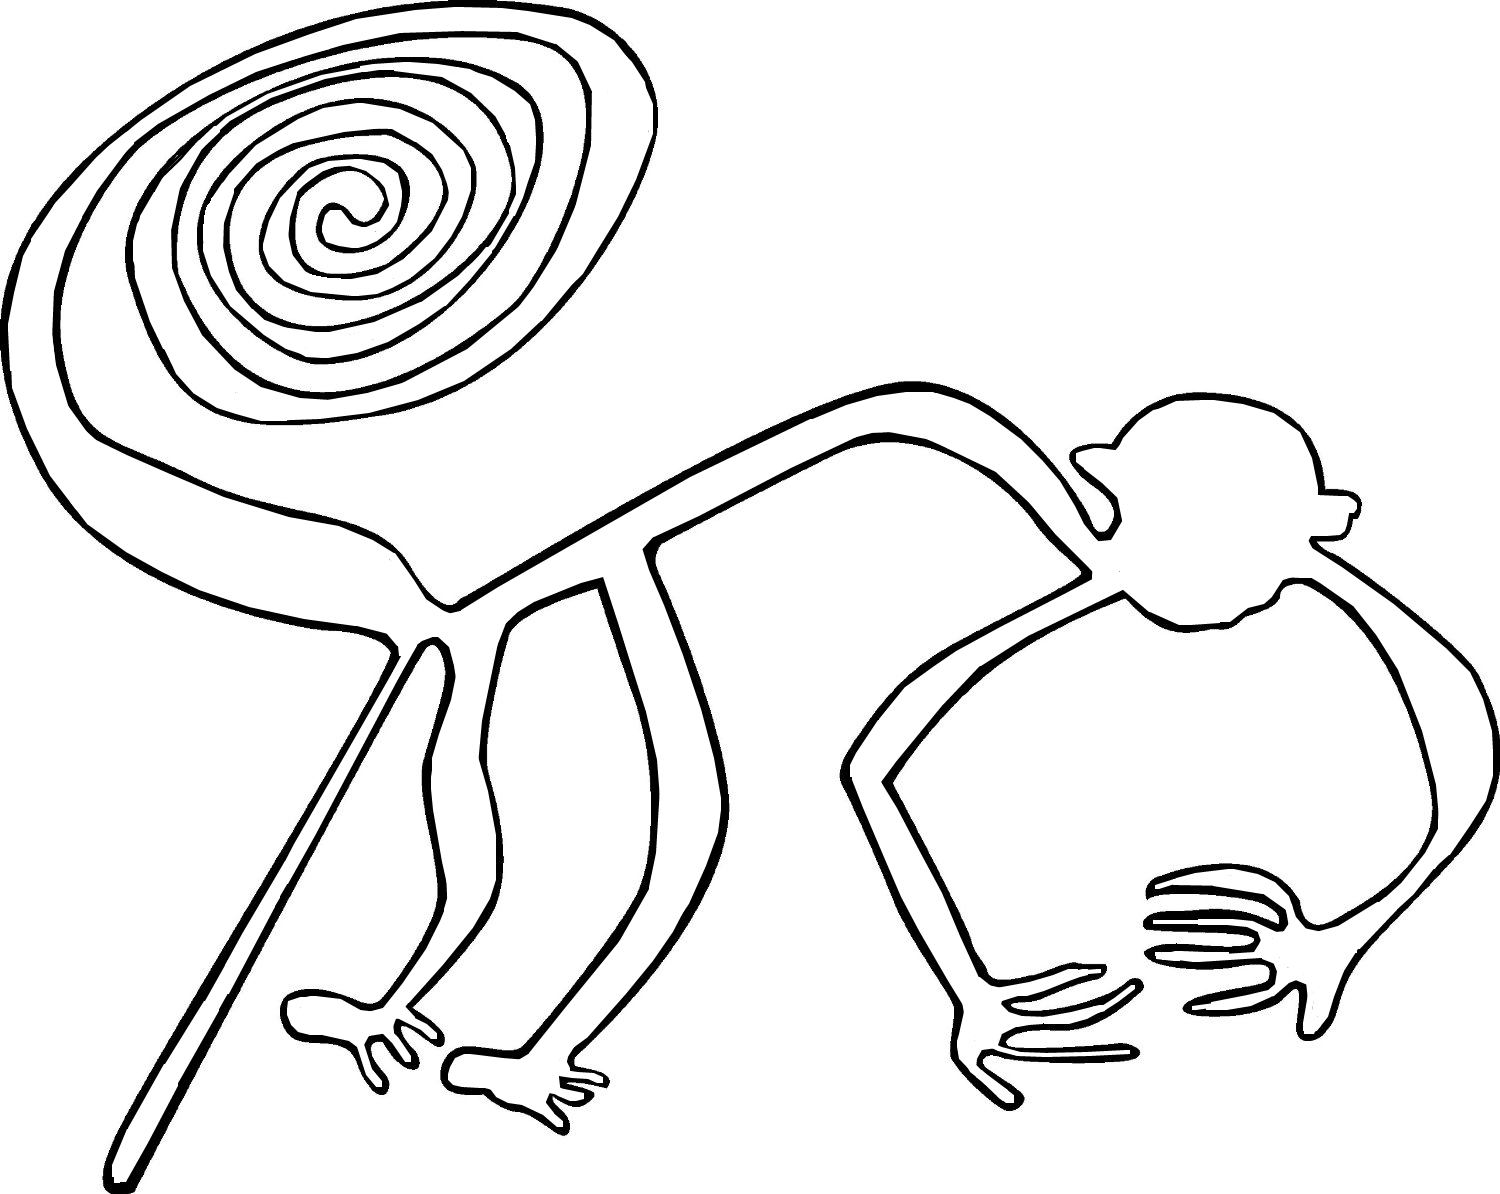 Line Drawing From Photo : Art lesson nazca plateau contour line drawing